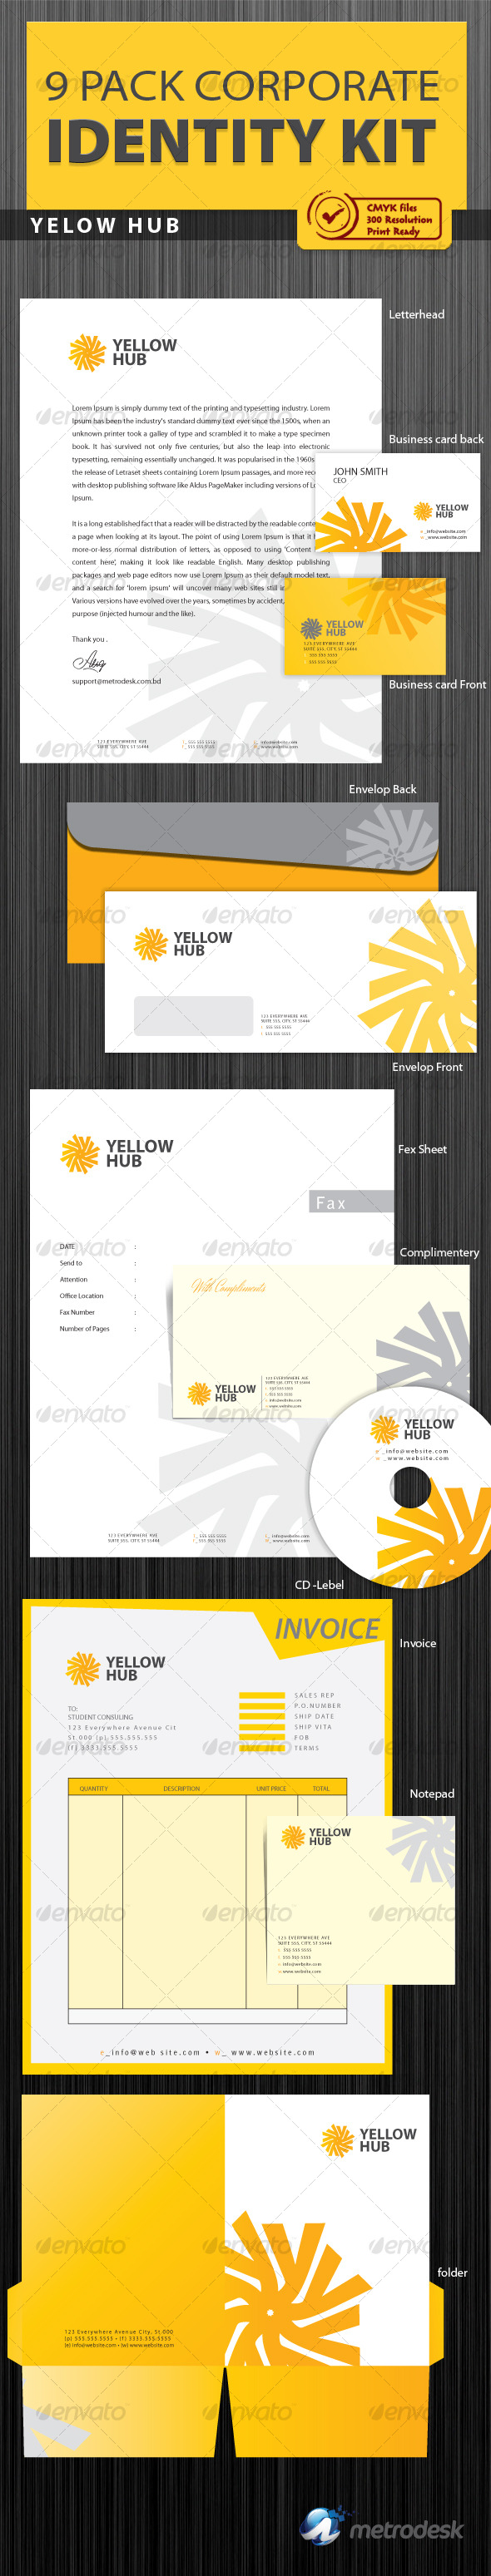 Yellow Hub Corporate Identity [ 9 Pack ] - Stationery Print Templates